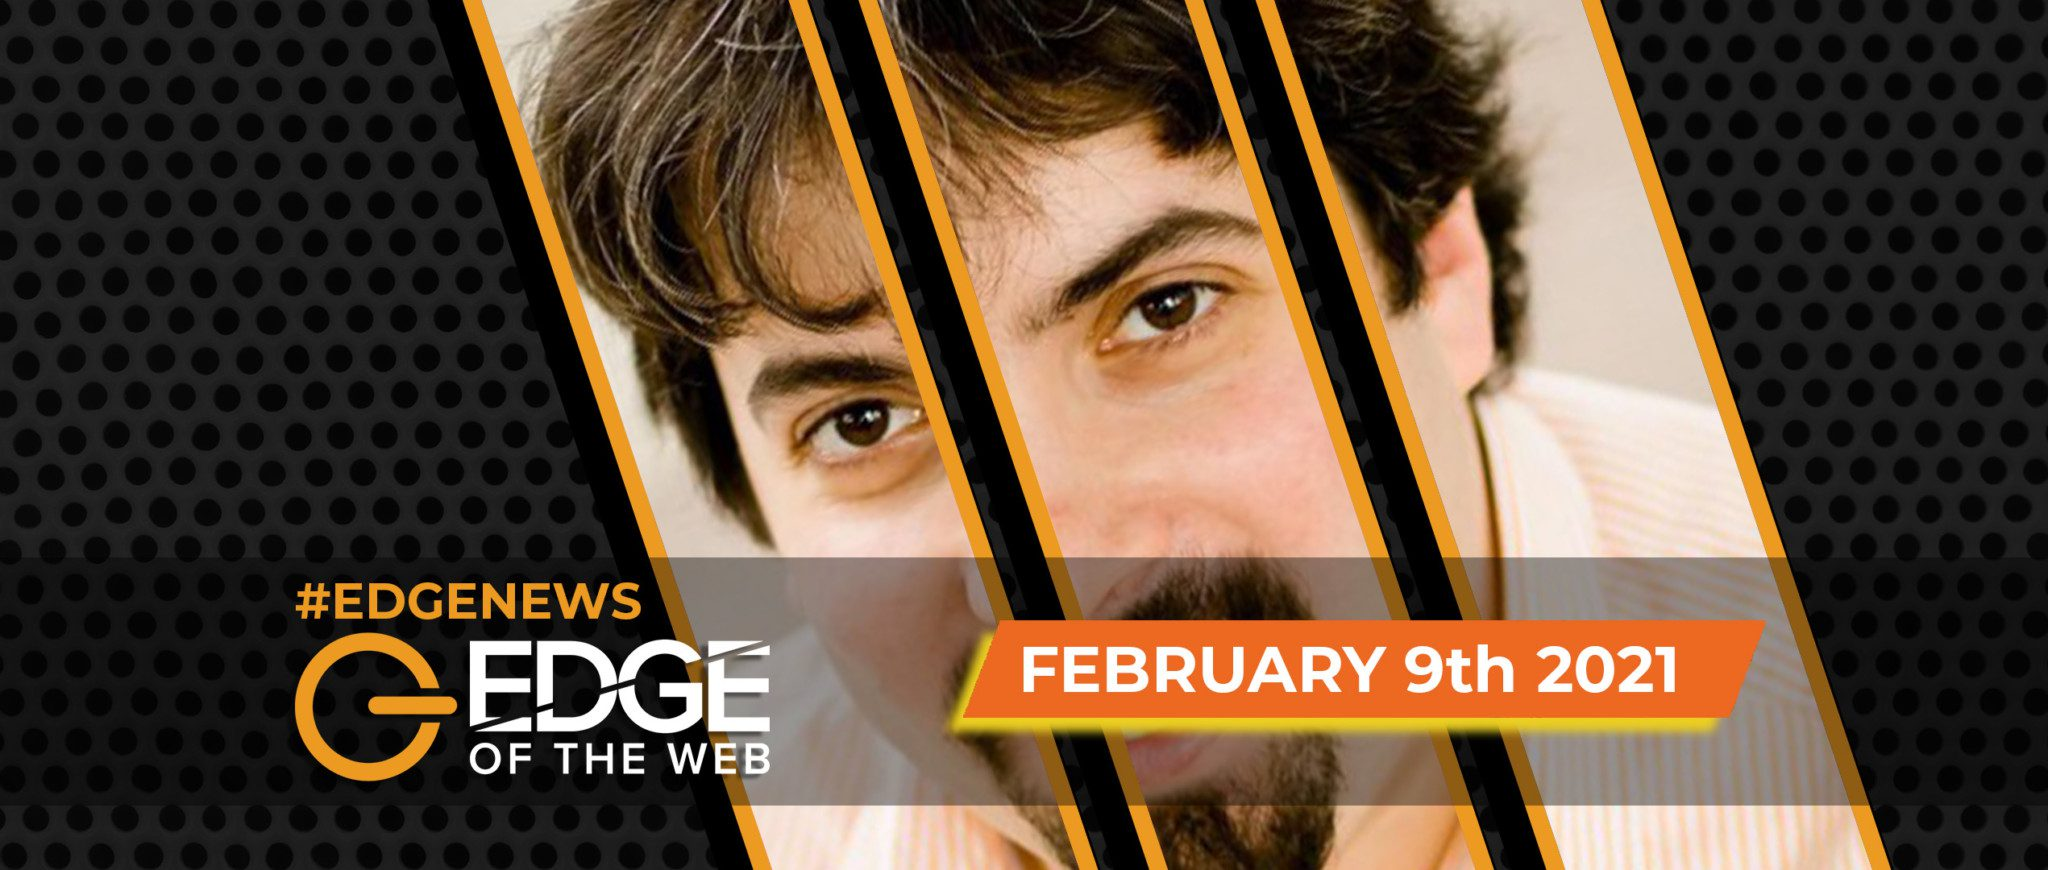 392 | News from the EDGE: Week of February 8, 2021